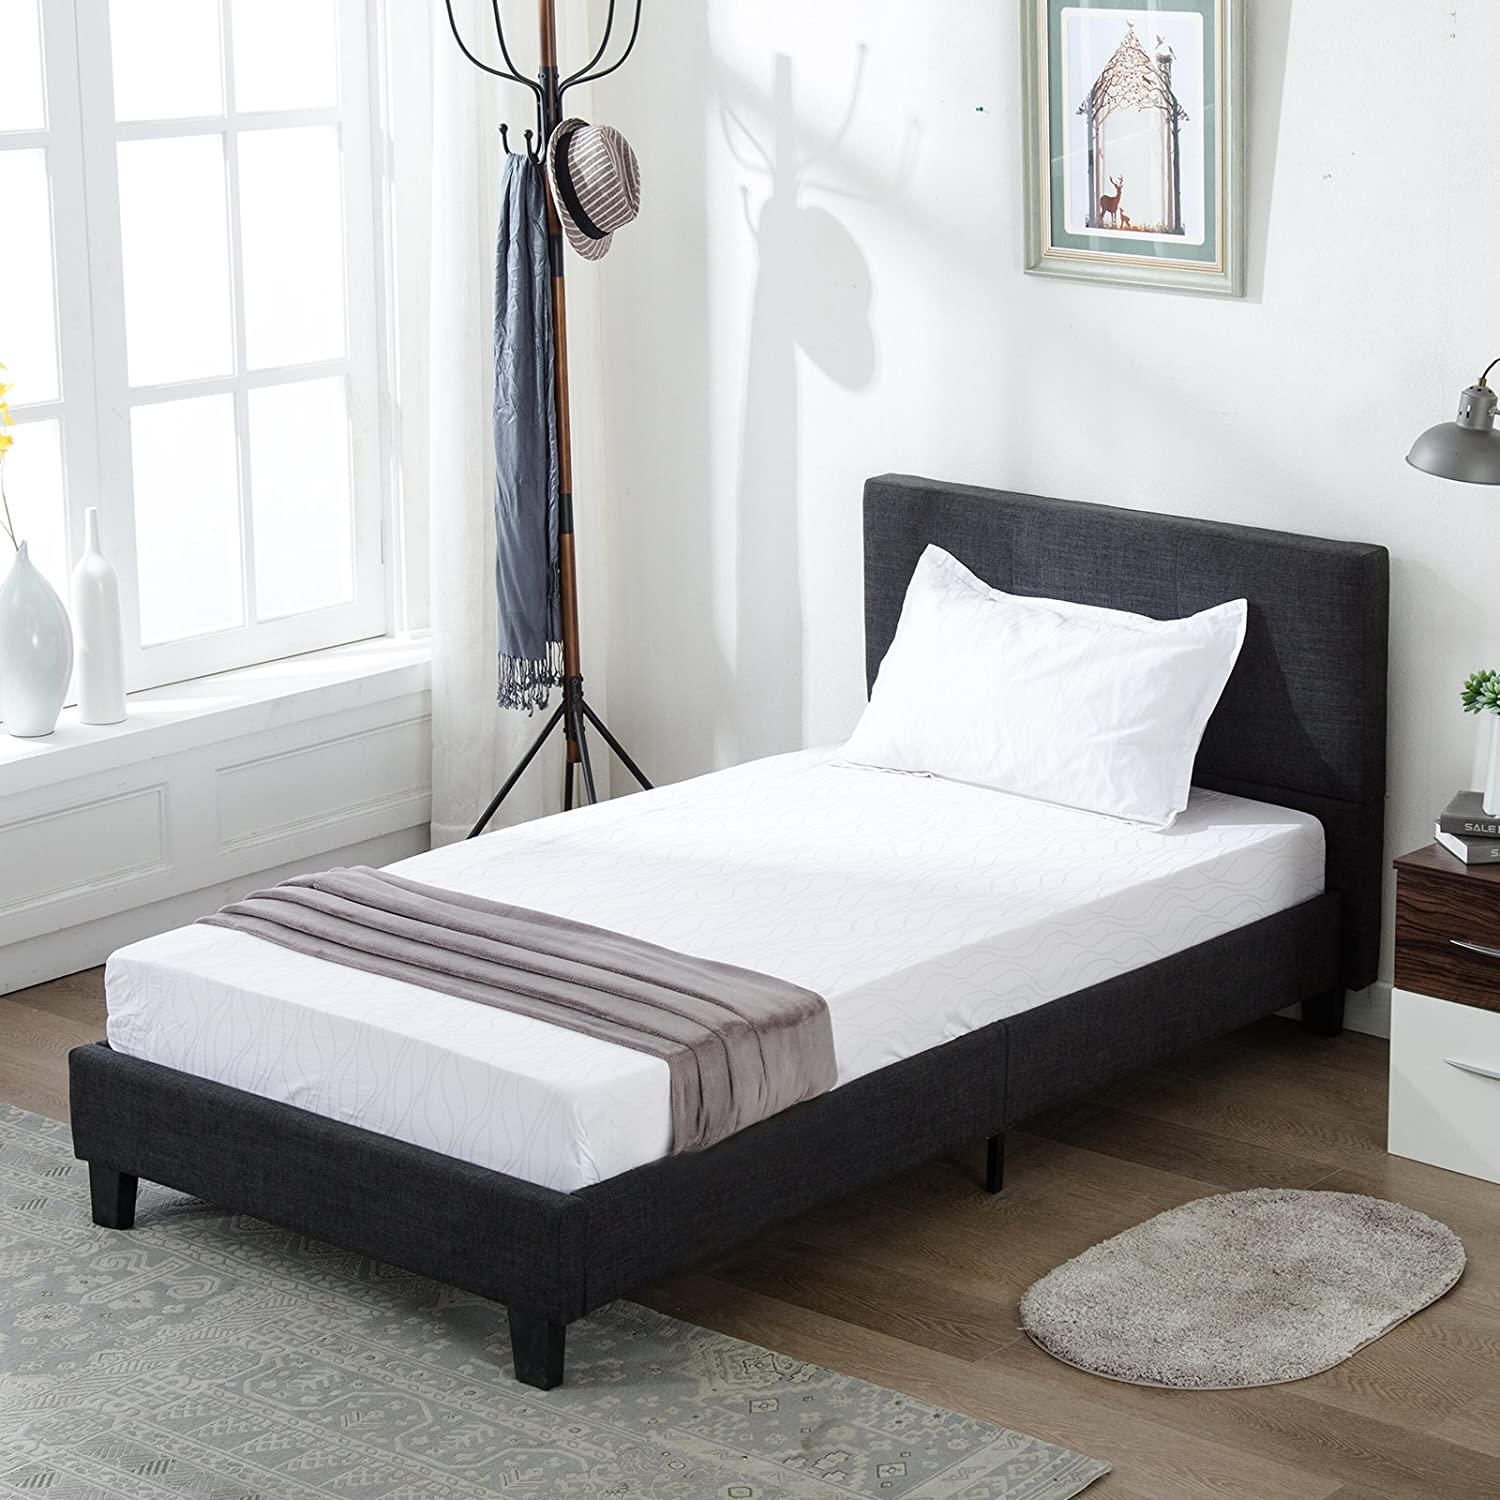 Mecor Upholstered Linen Twin Platform Bed Metal Frame with Wood Slat Support,Square Stitched Headboard,Black Twin Size